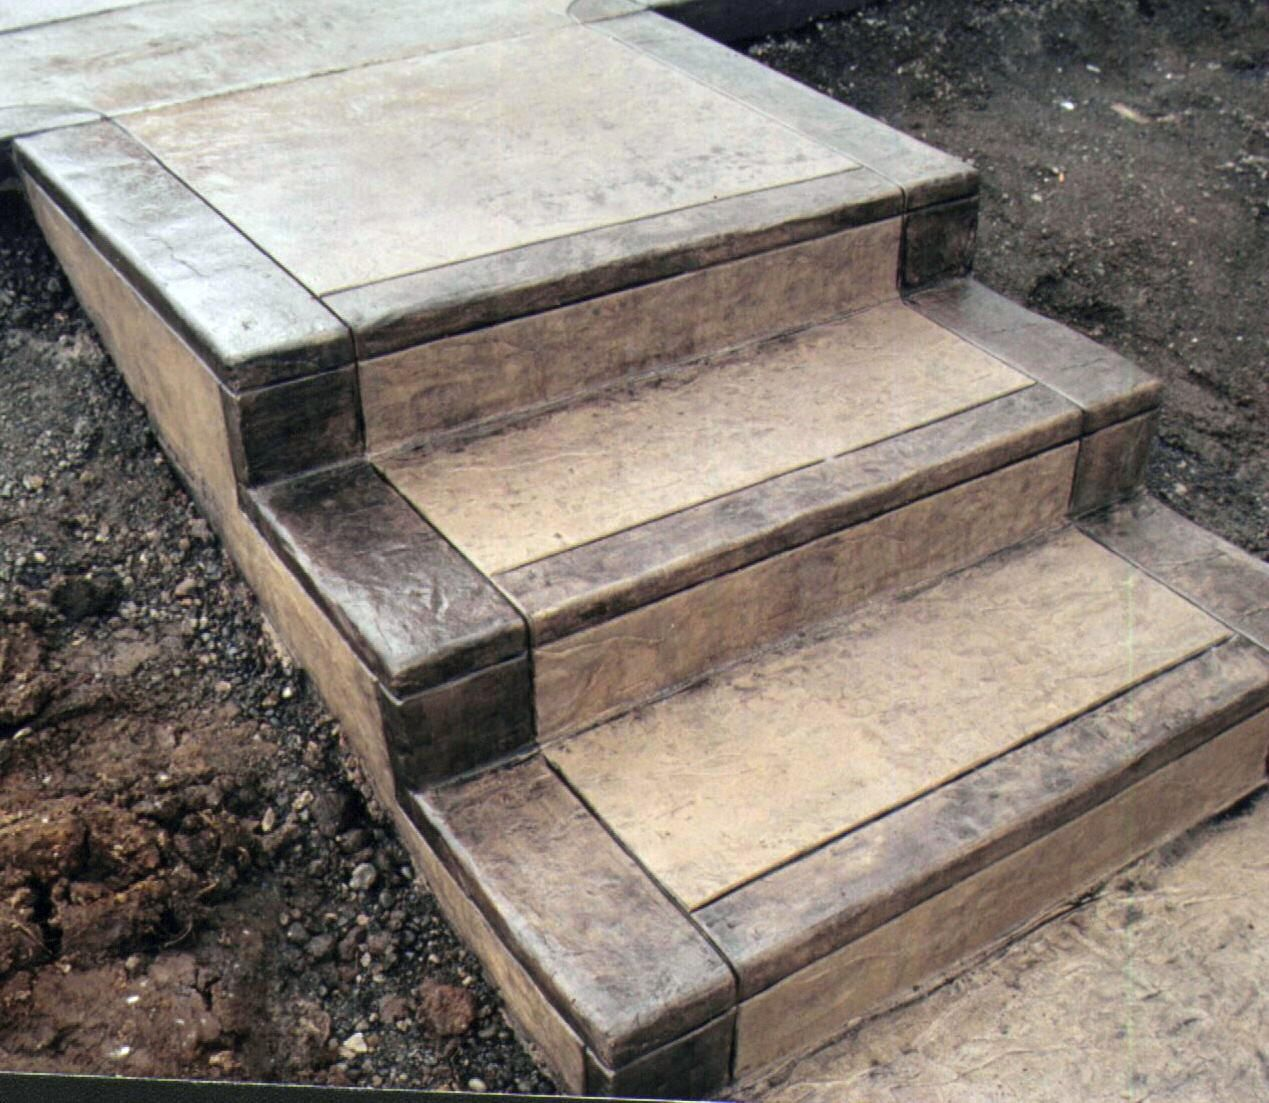 Concrete Stairs Design Ideas Home Stair Picture Exterior: Concrete Front Steps Design Ideas